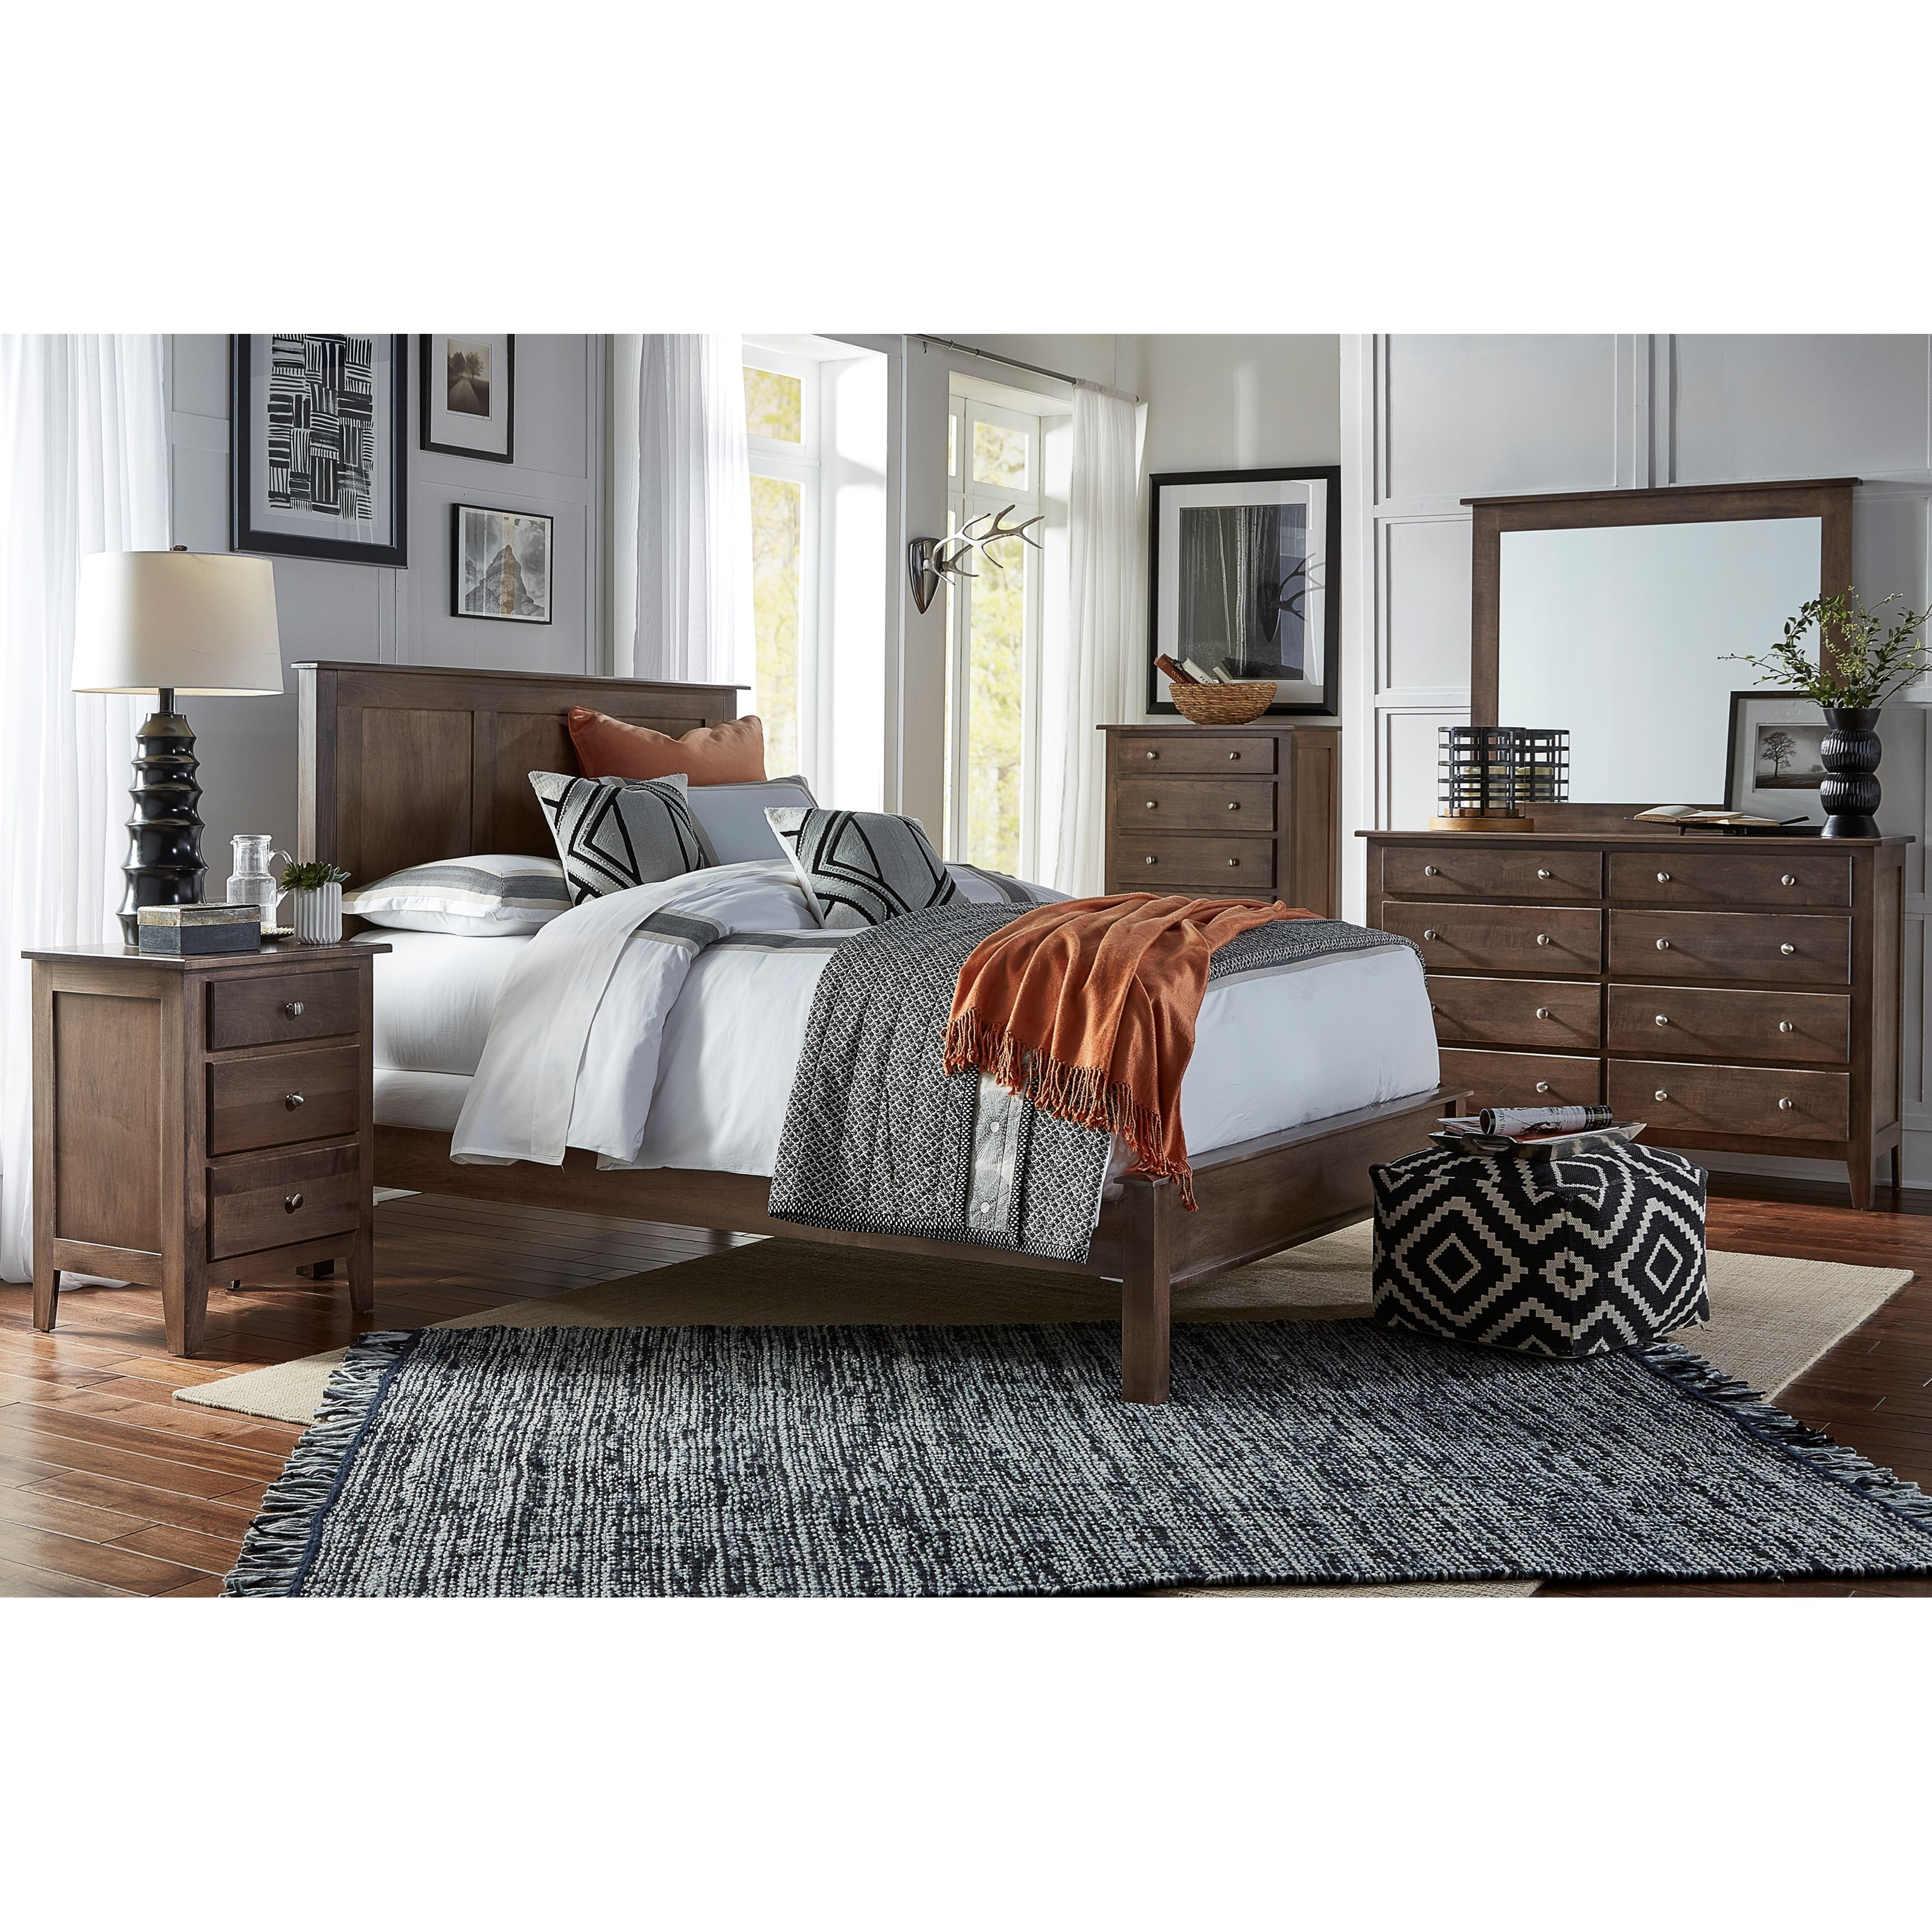 Mapleton King Bedroom Group by Daniel's Amish at H.L. Stephens